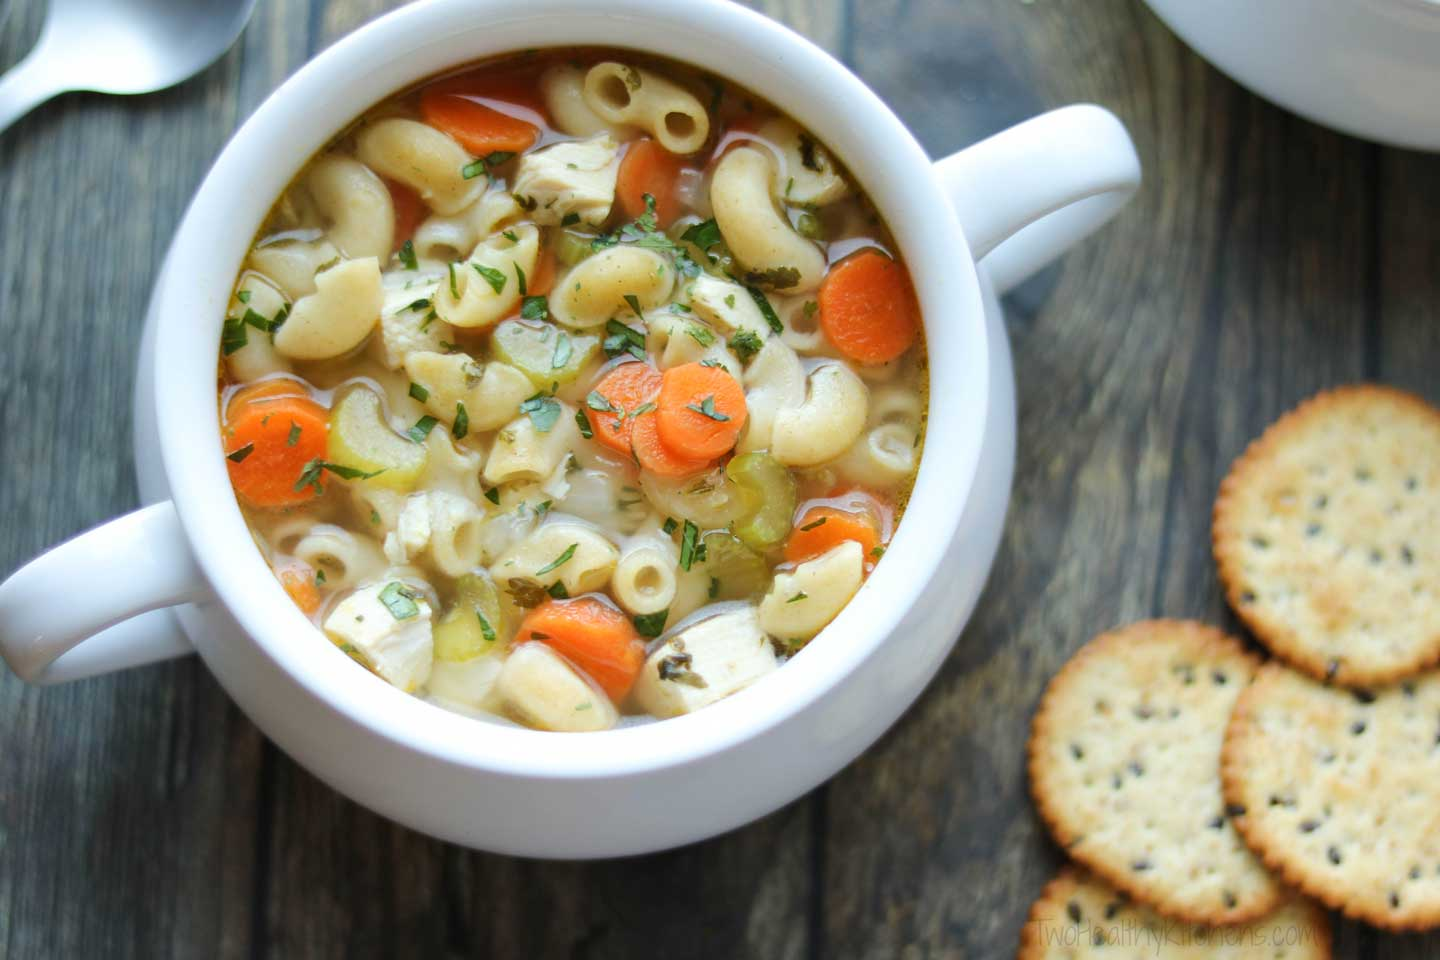 A good, quick and easy Chicken Noodle Soup recipe is something every home cook should have in their back pocket!